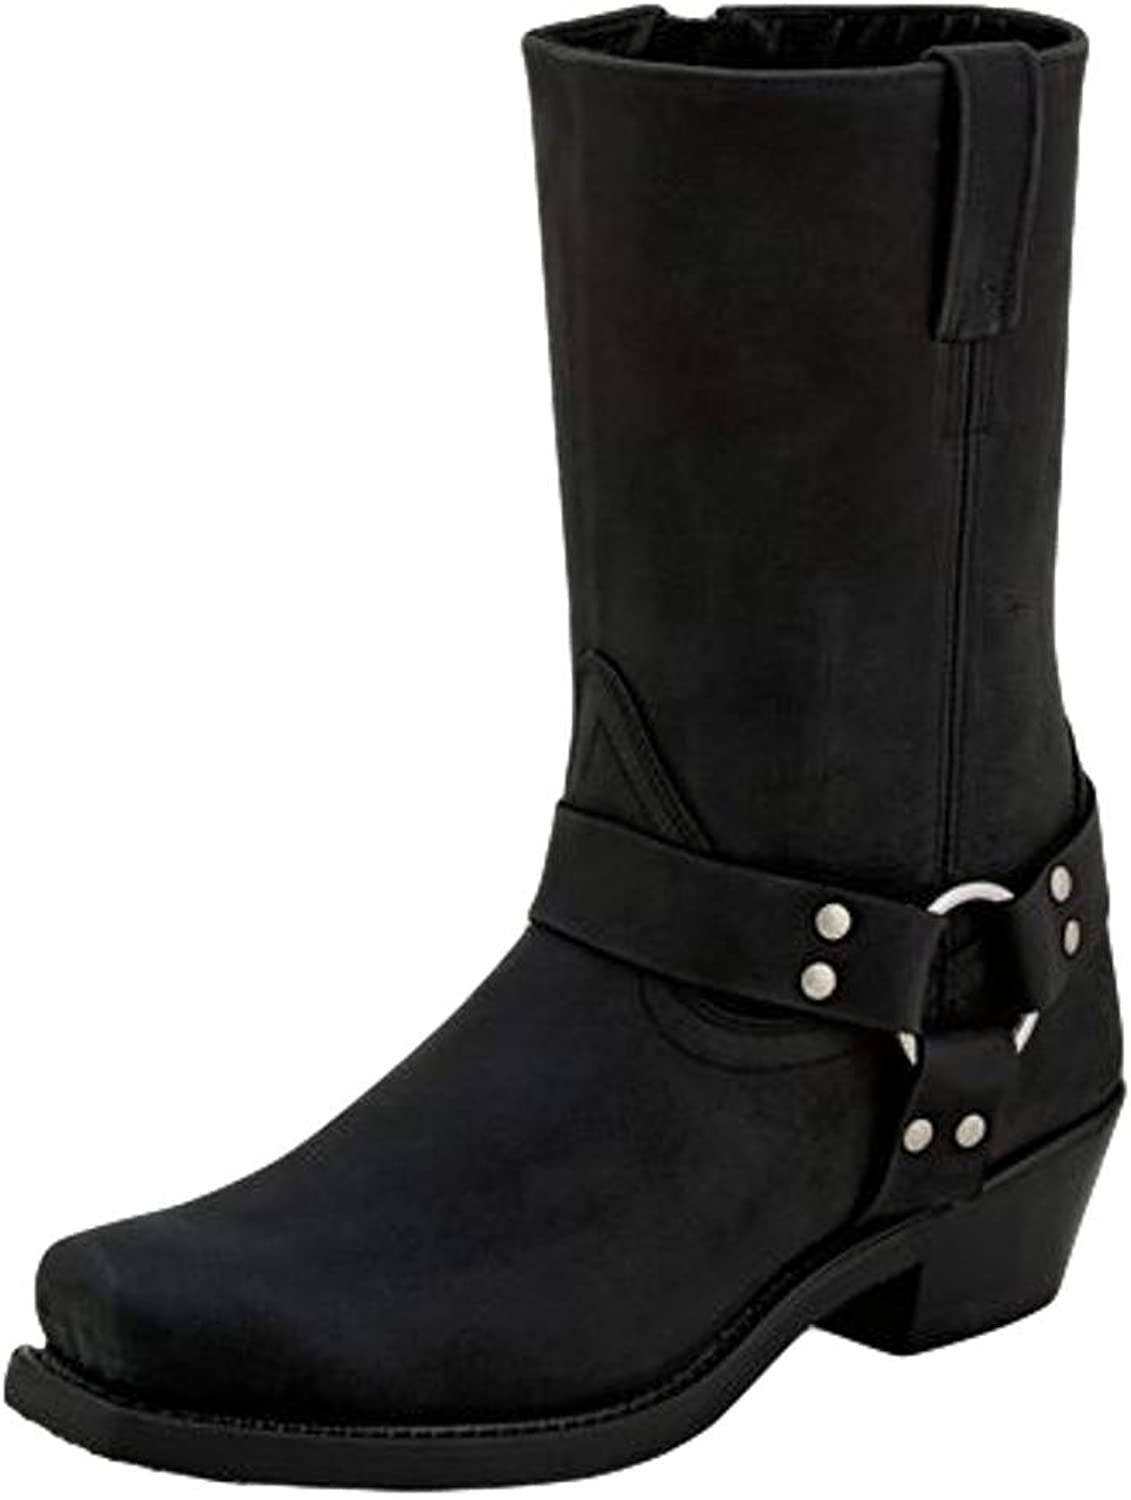 Old West Boots Women's Harness Boot